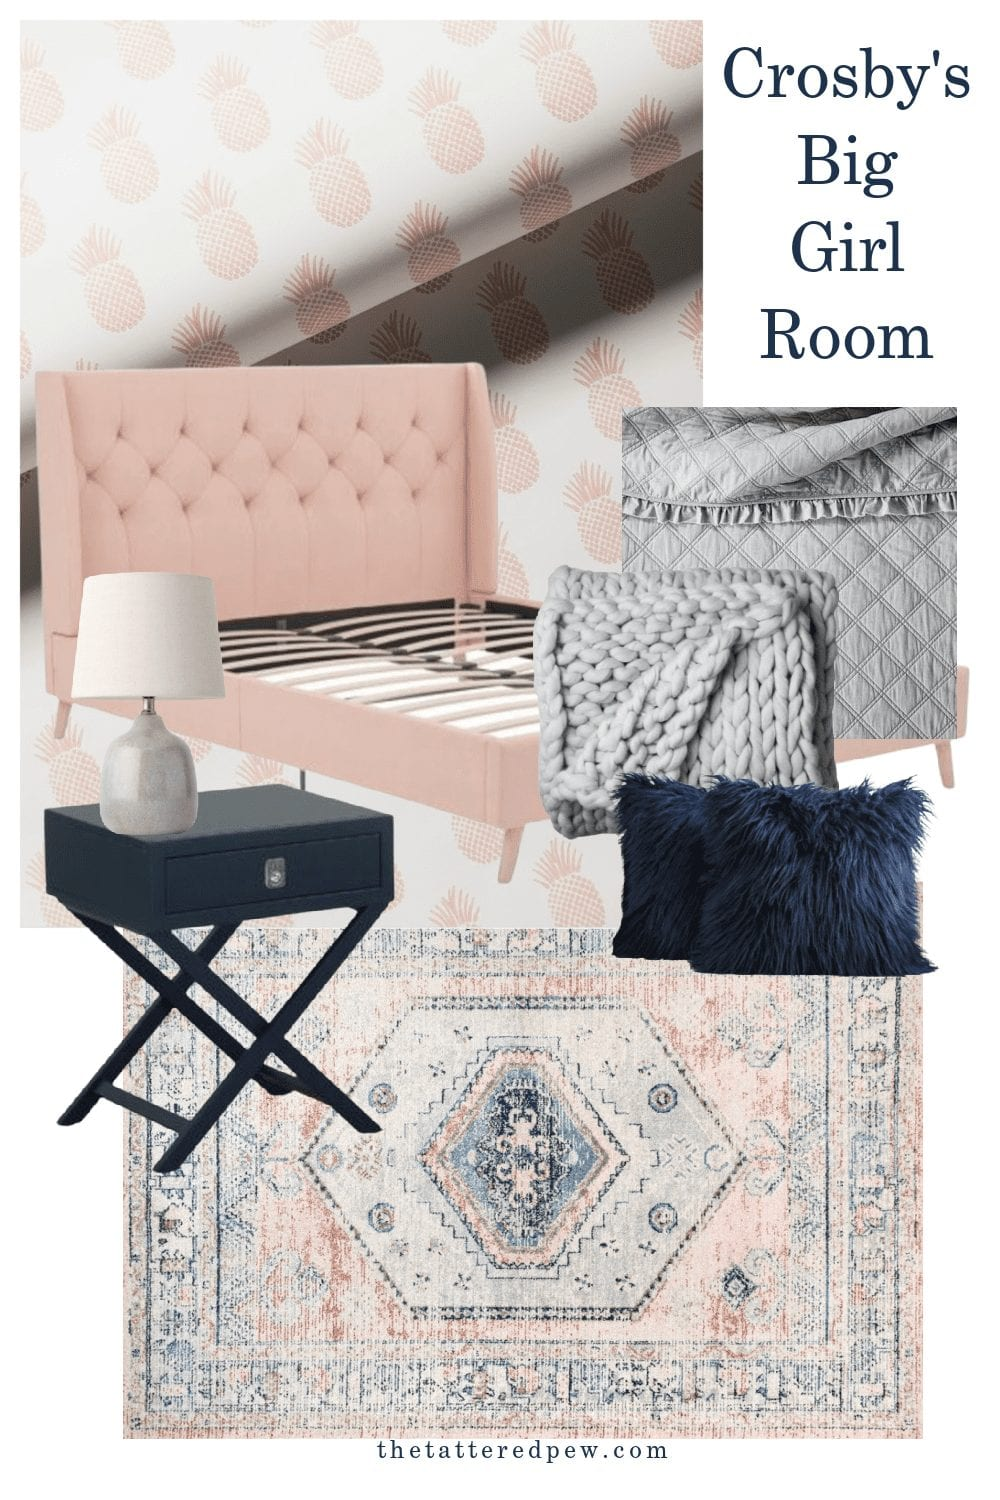 Light pink, navy and grey bedroom design plans for Crosby's room.